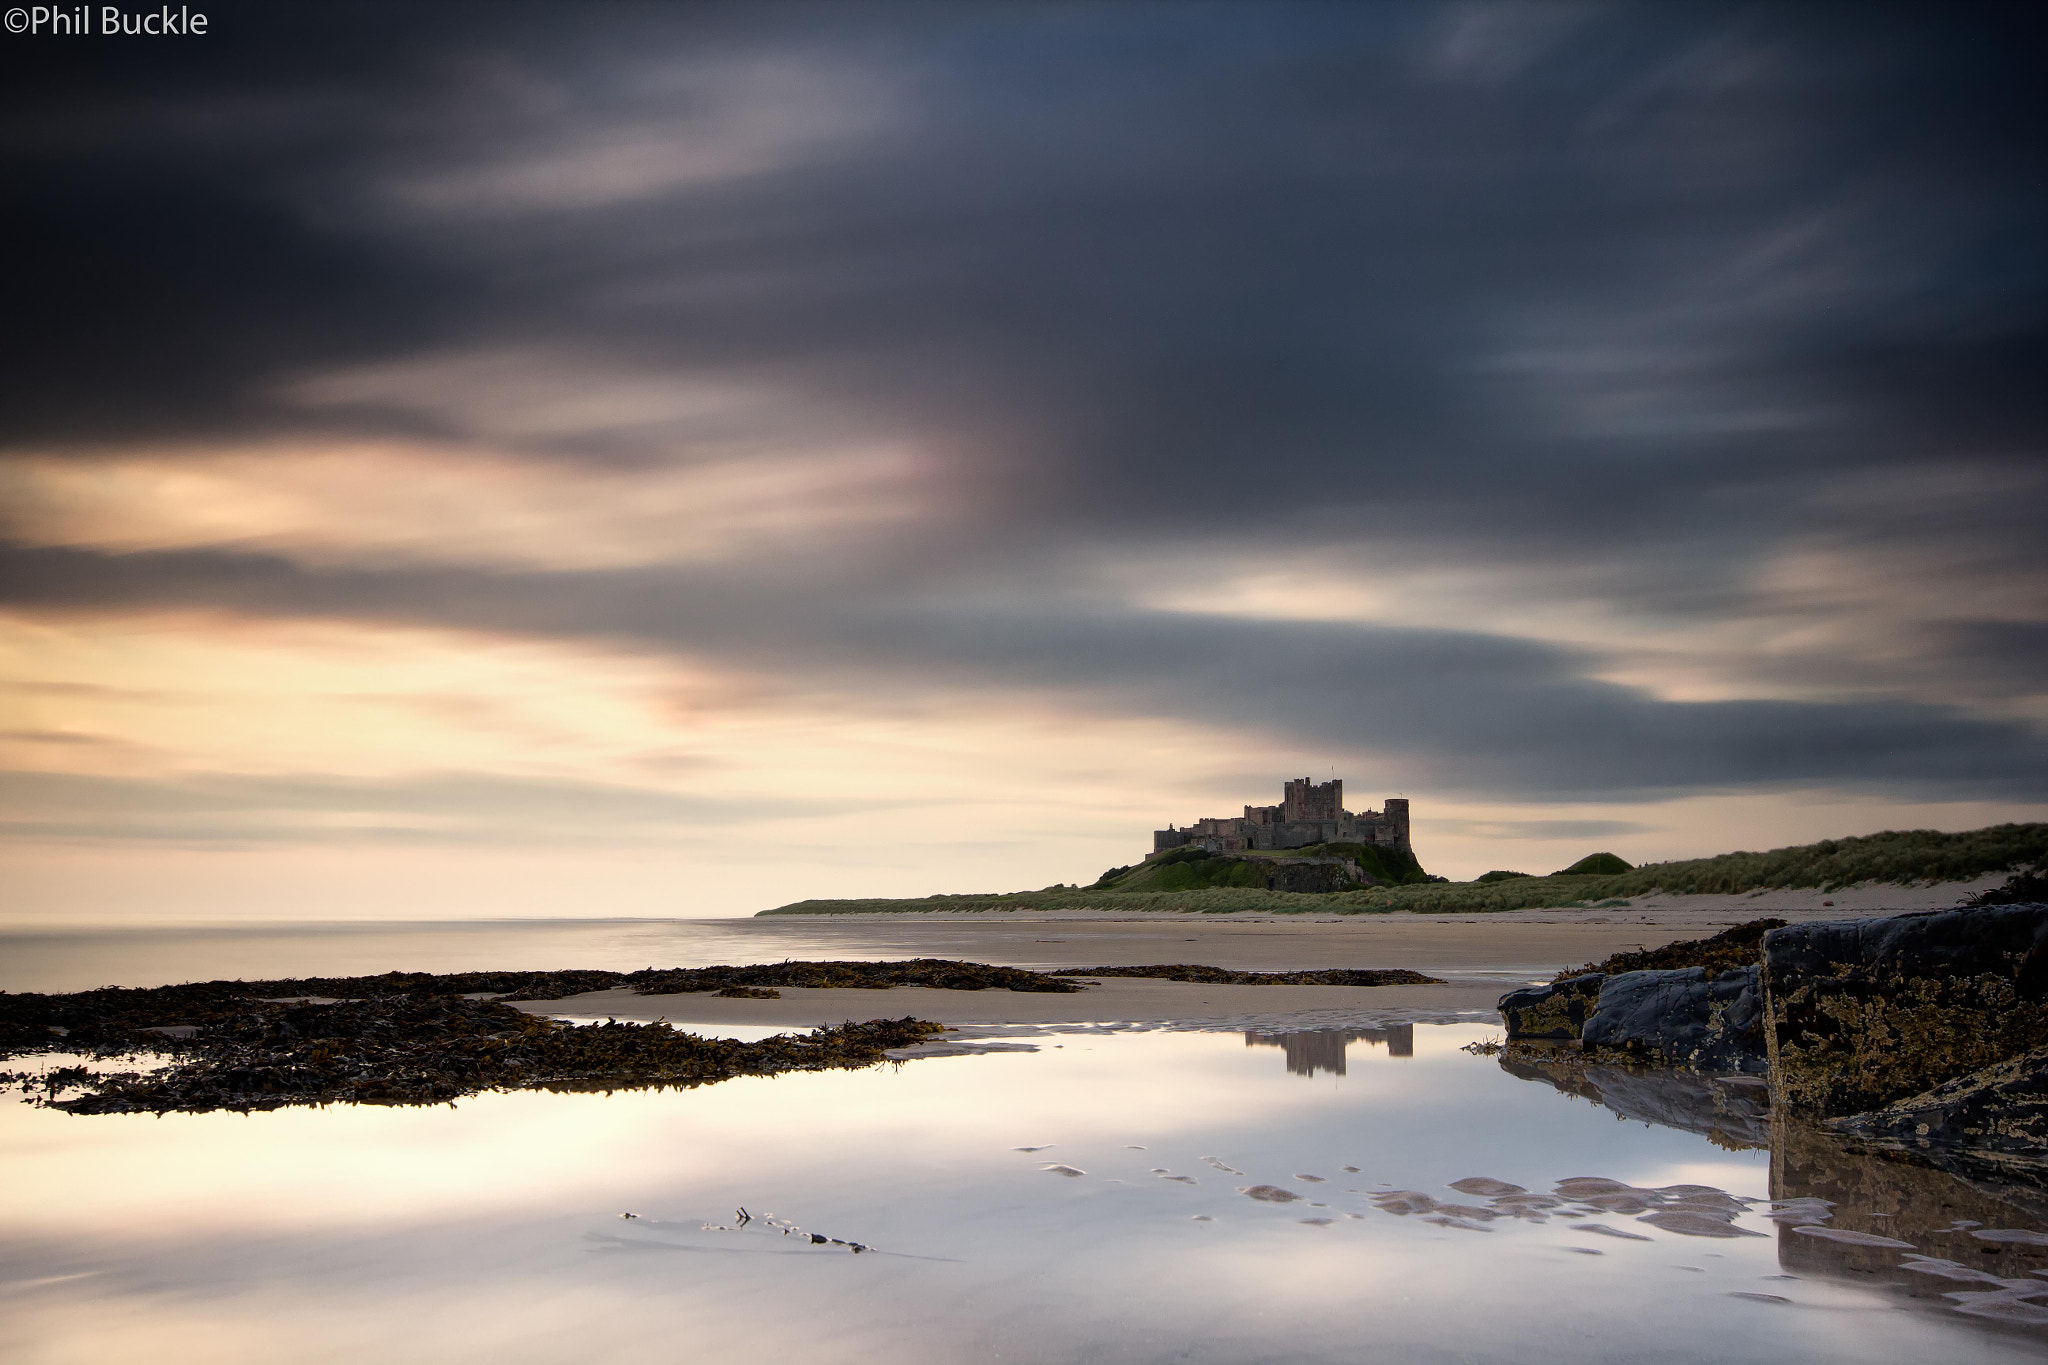 Photograph Bamburgh Dawn by Phil Buckle on 500px